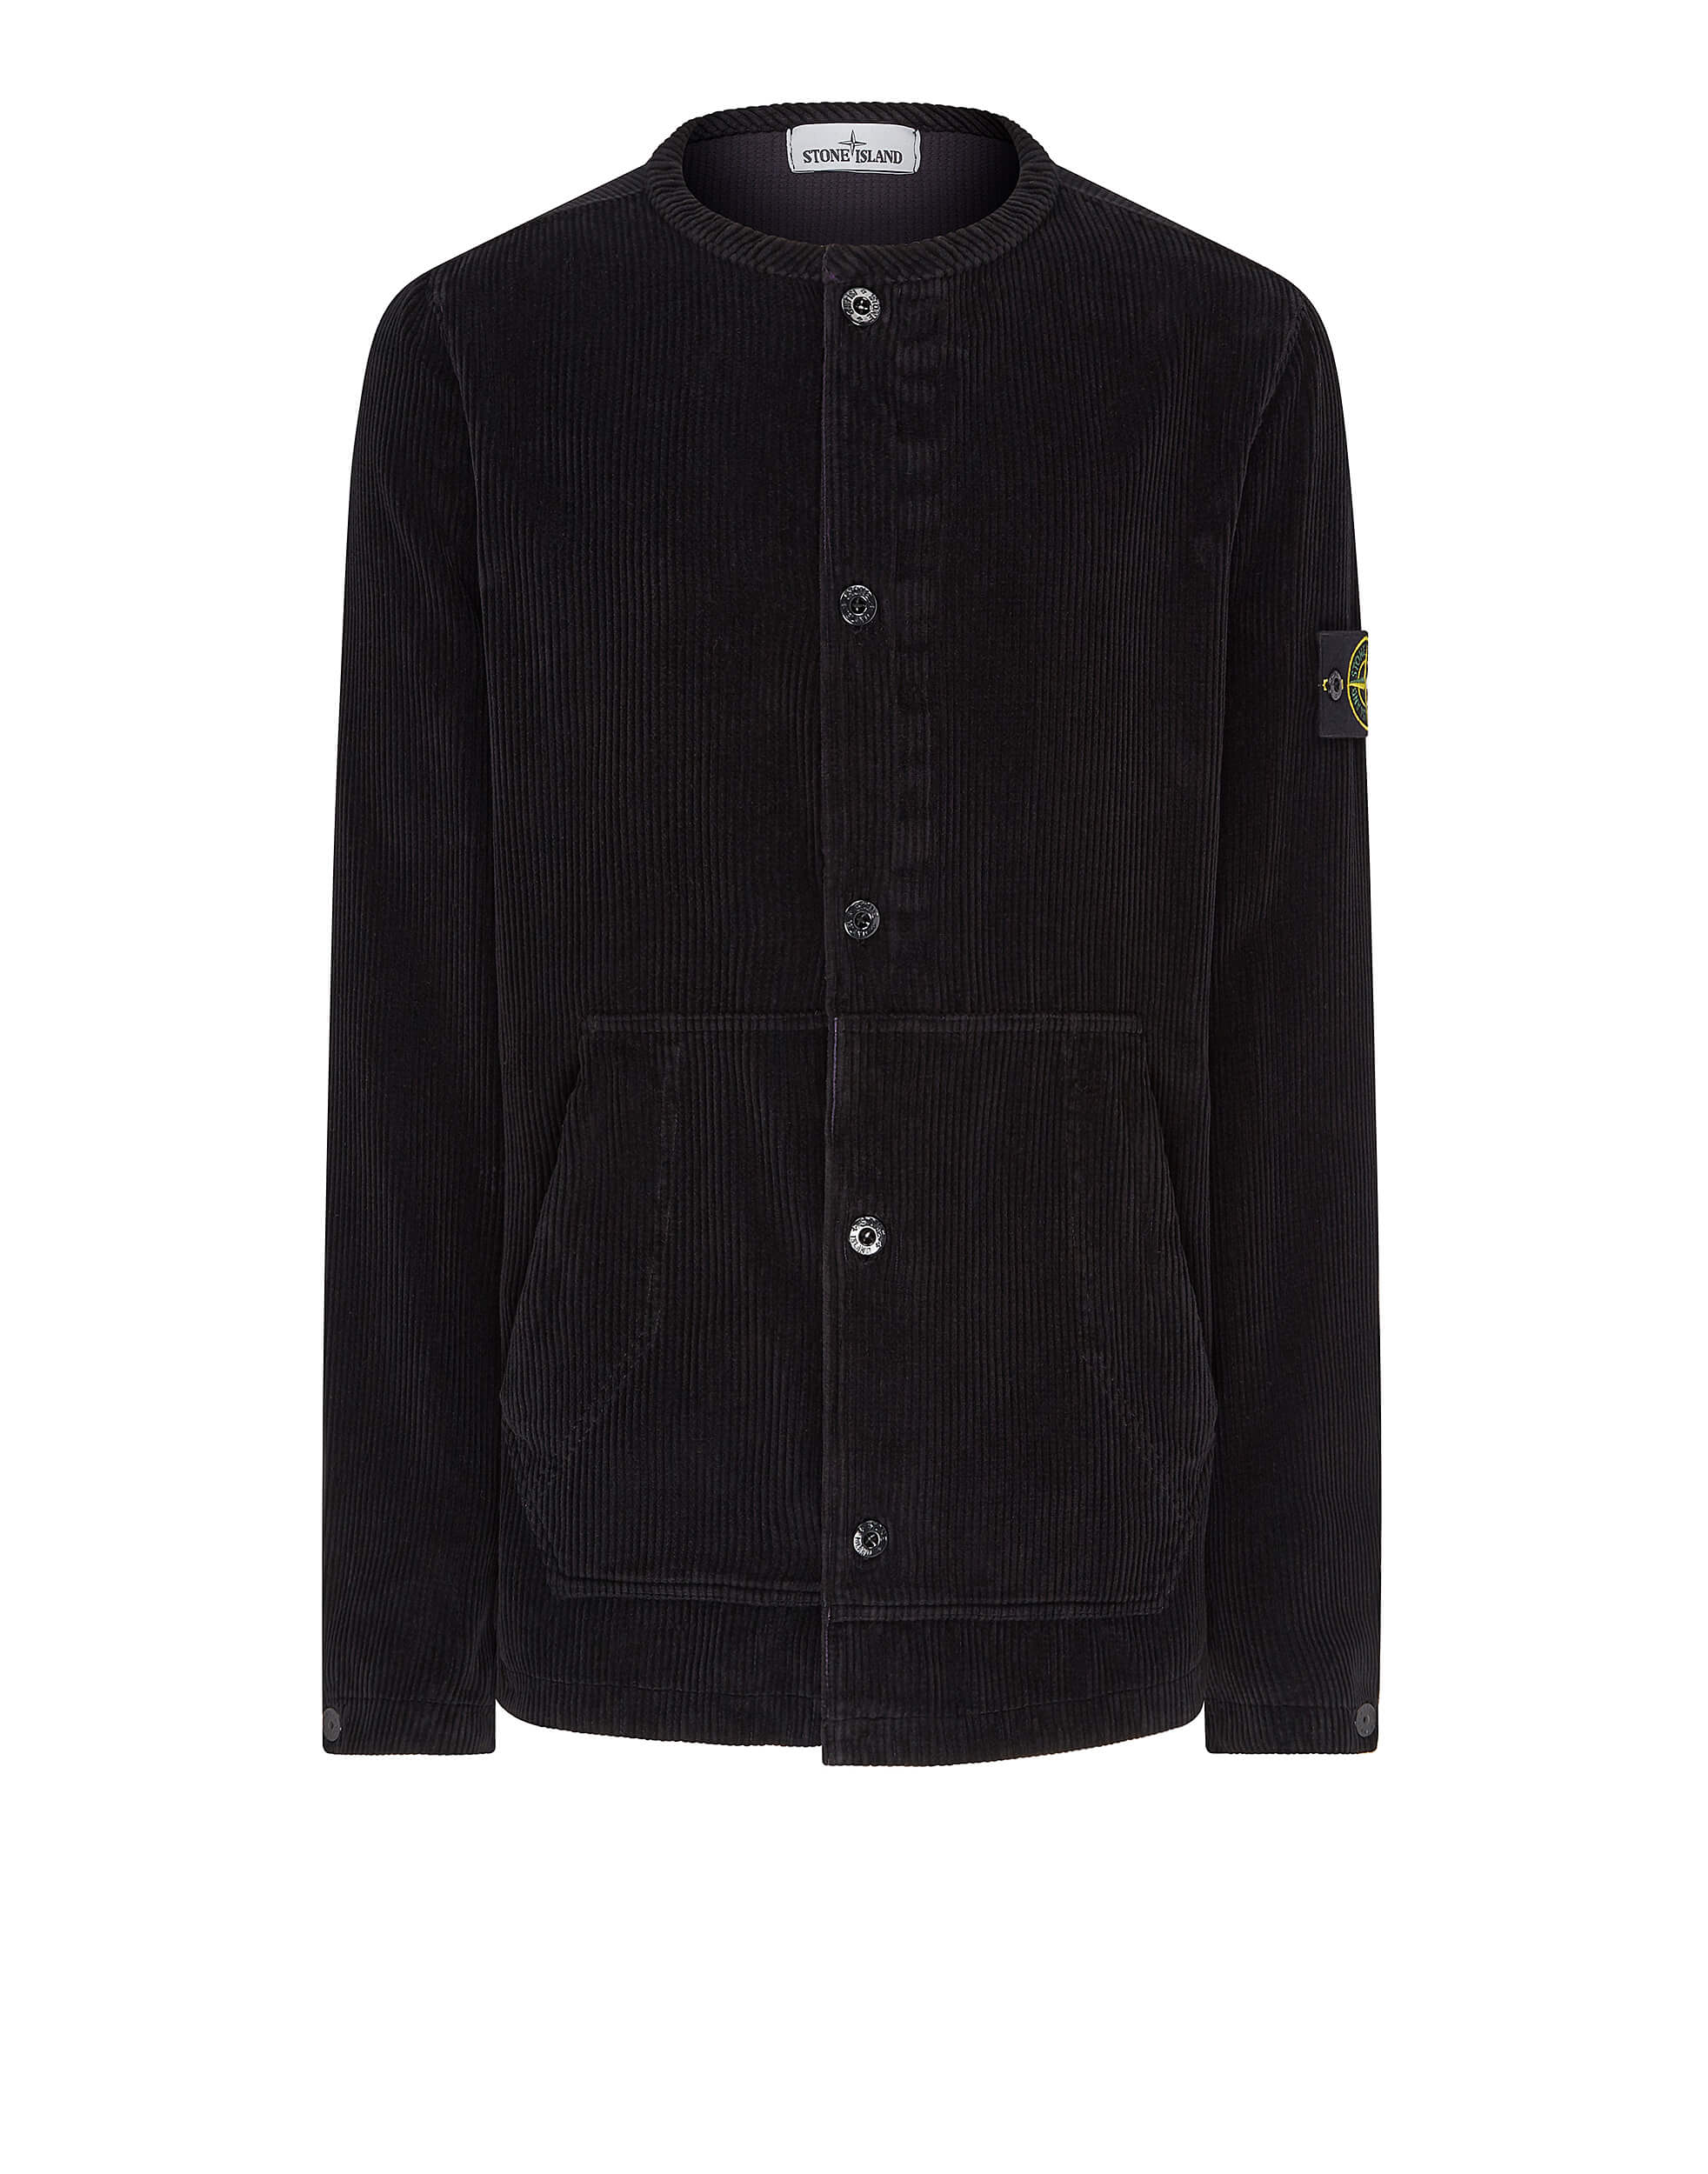 10939 Corduroy Overshirt in Black